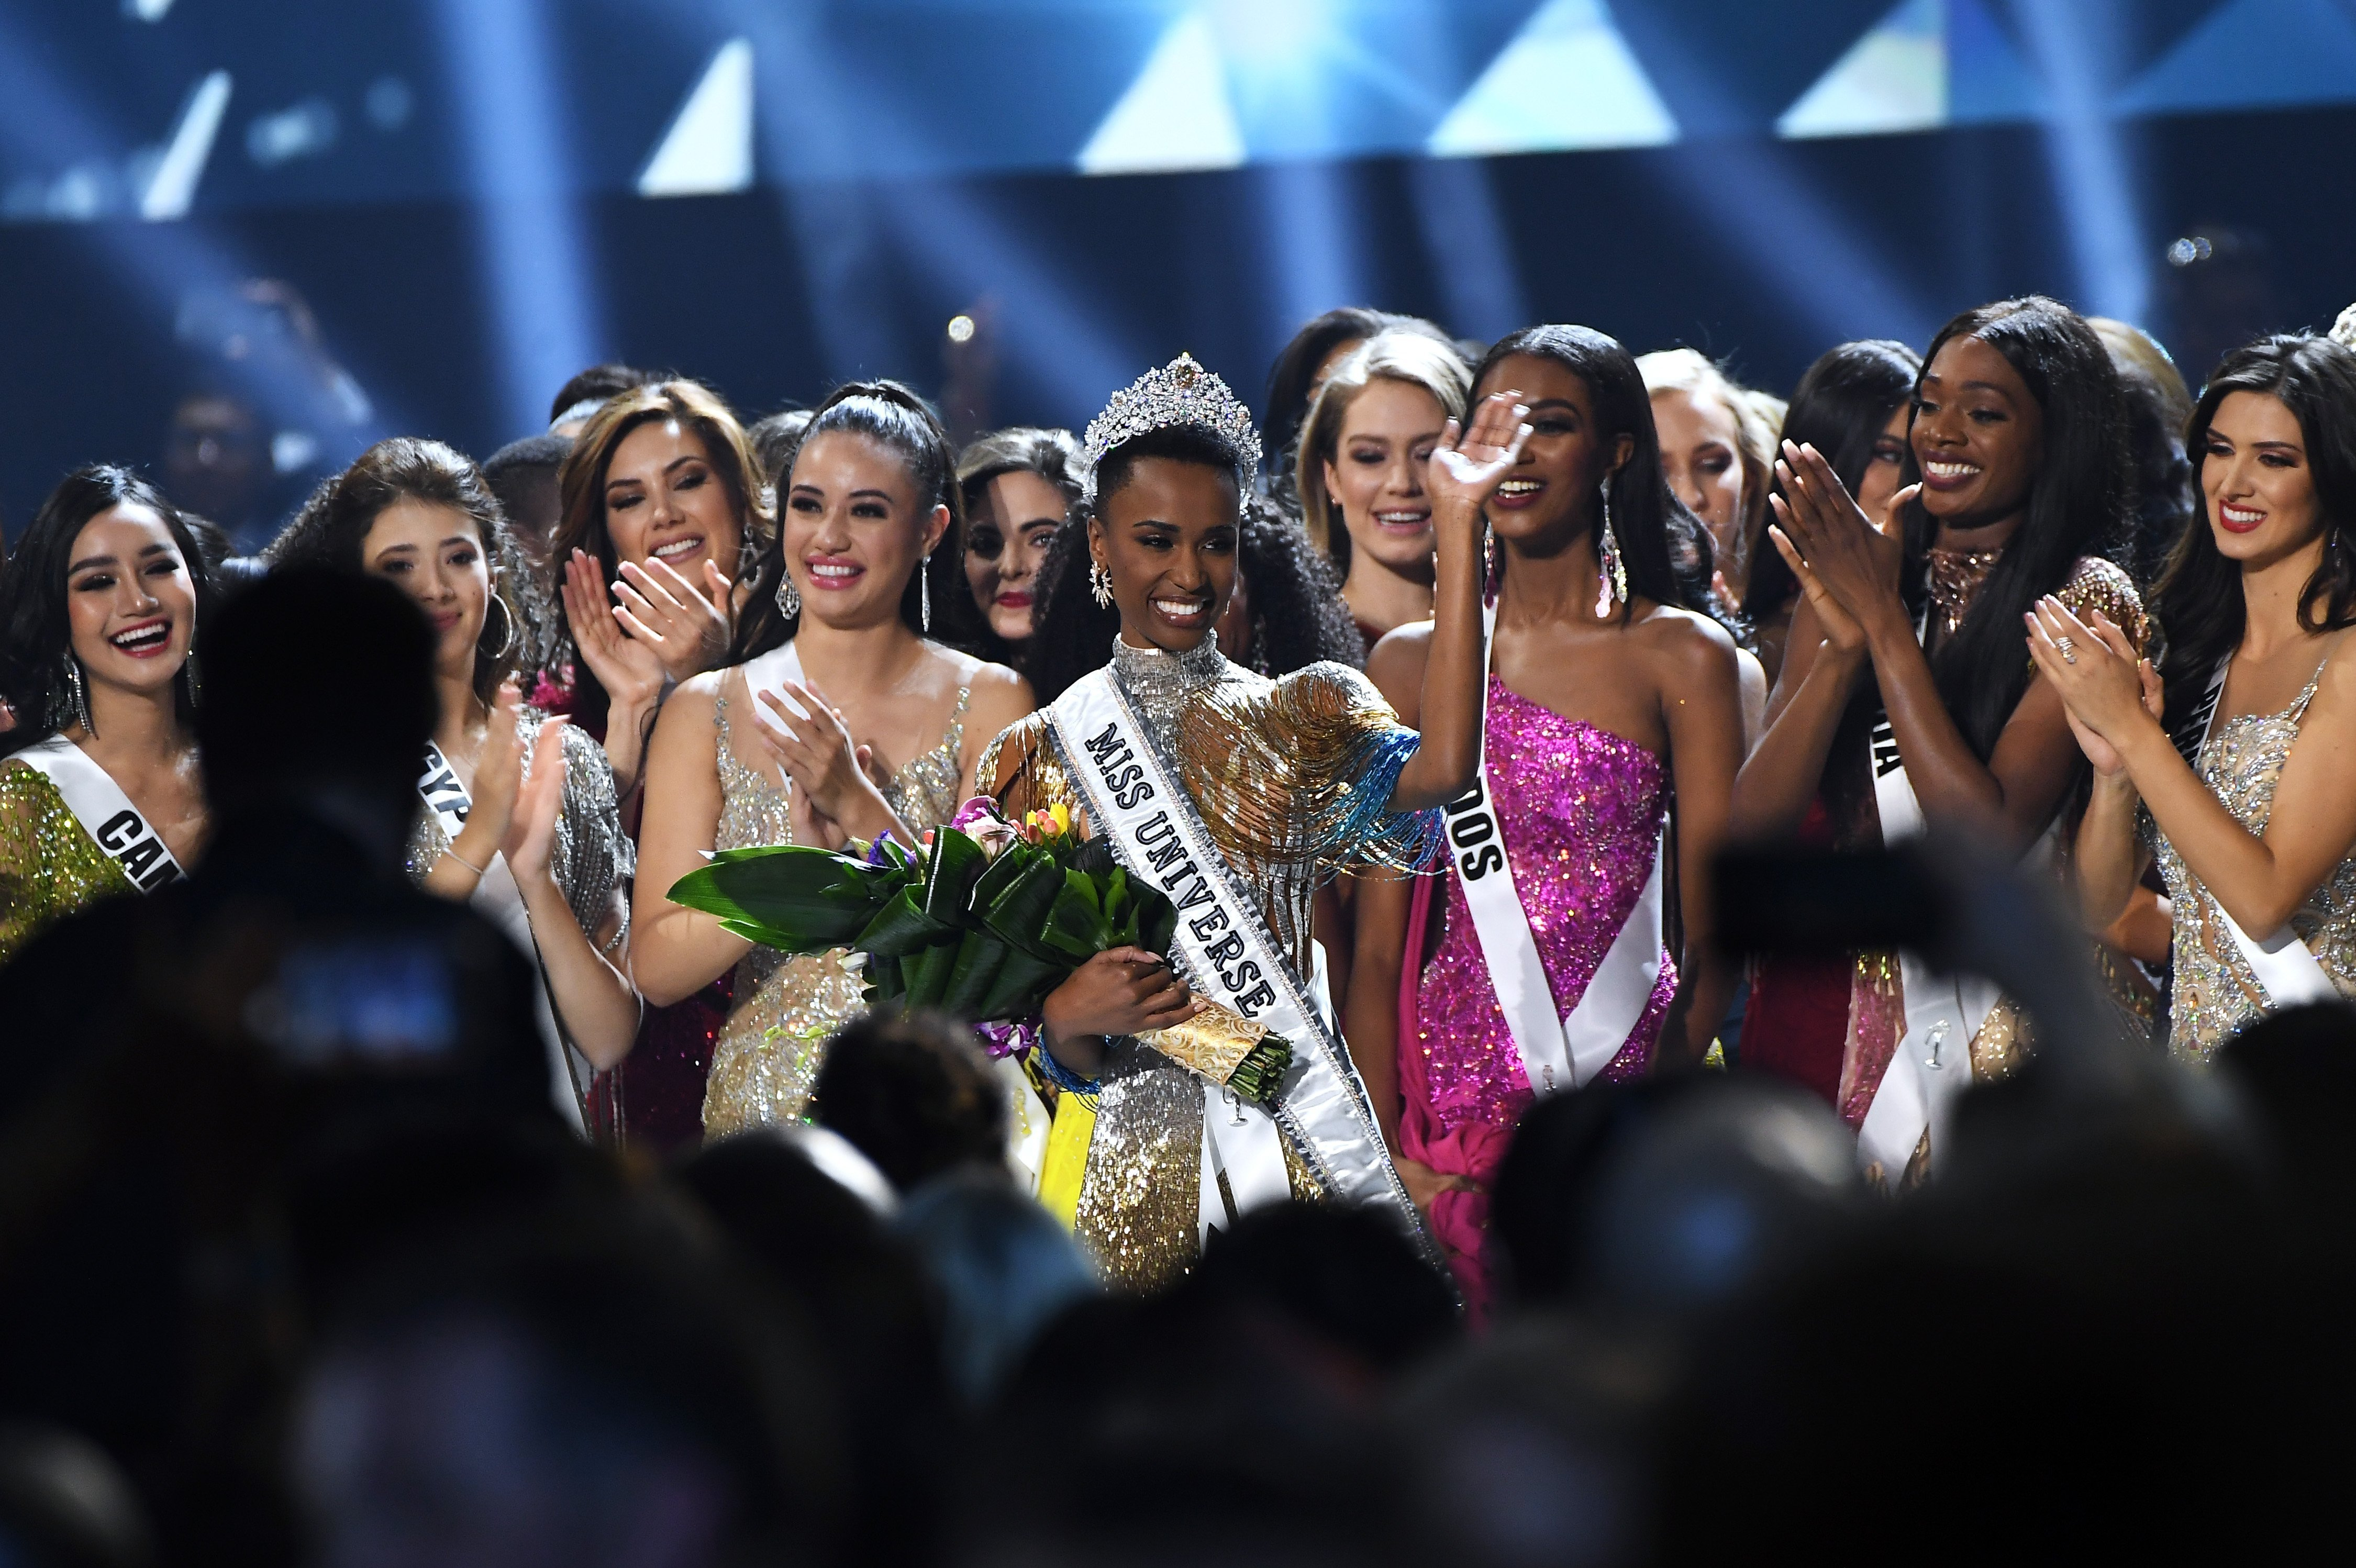 South African Zozibini Tunzi stands out amid a sea of beautiful women as she is crowned Miss Universe 2019. | Photo: Getty Images